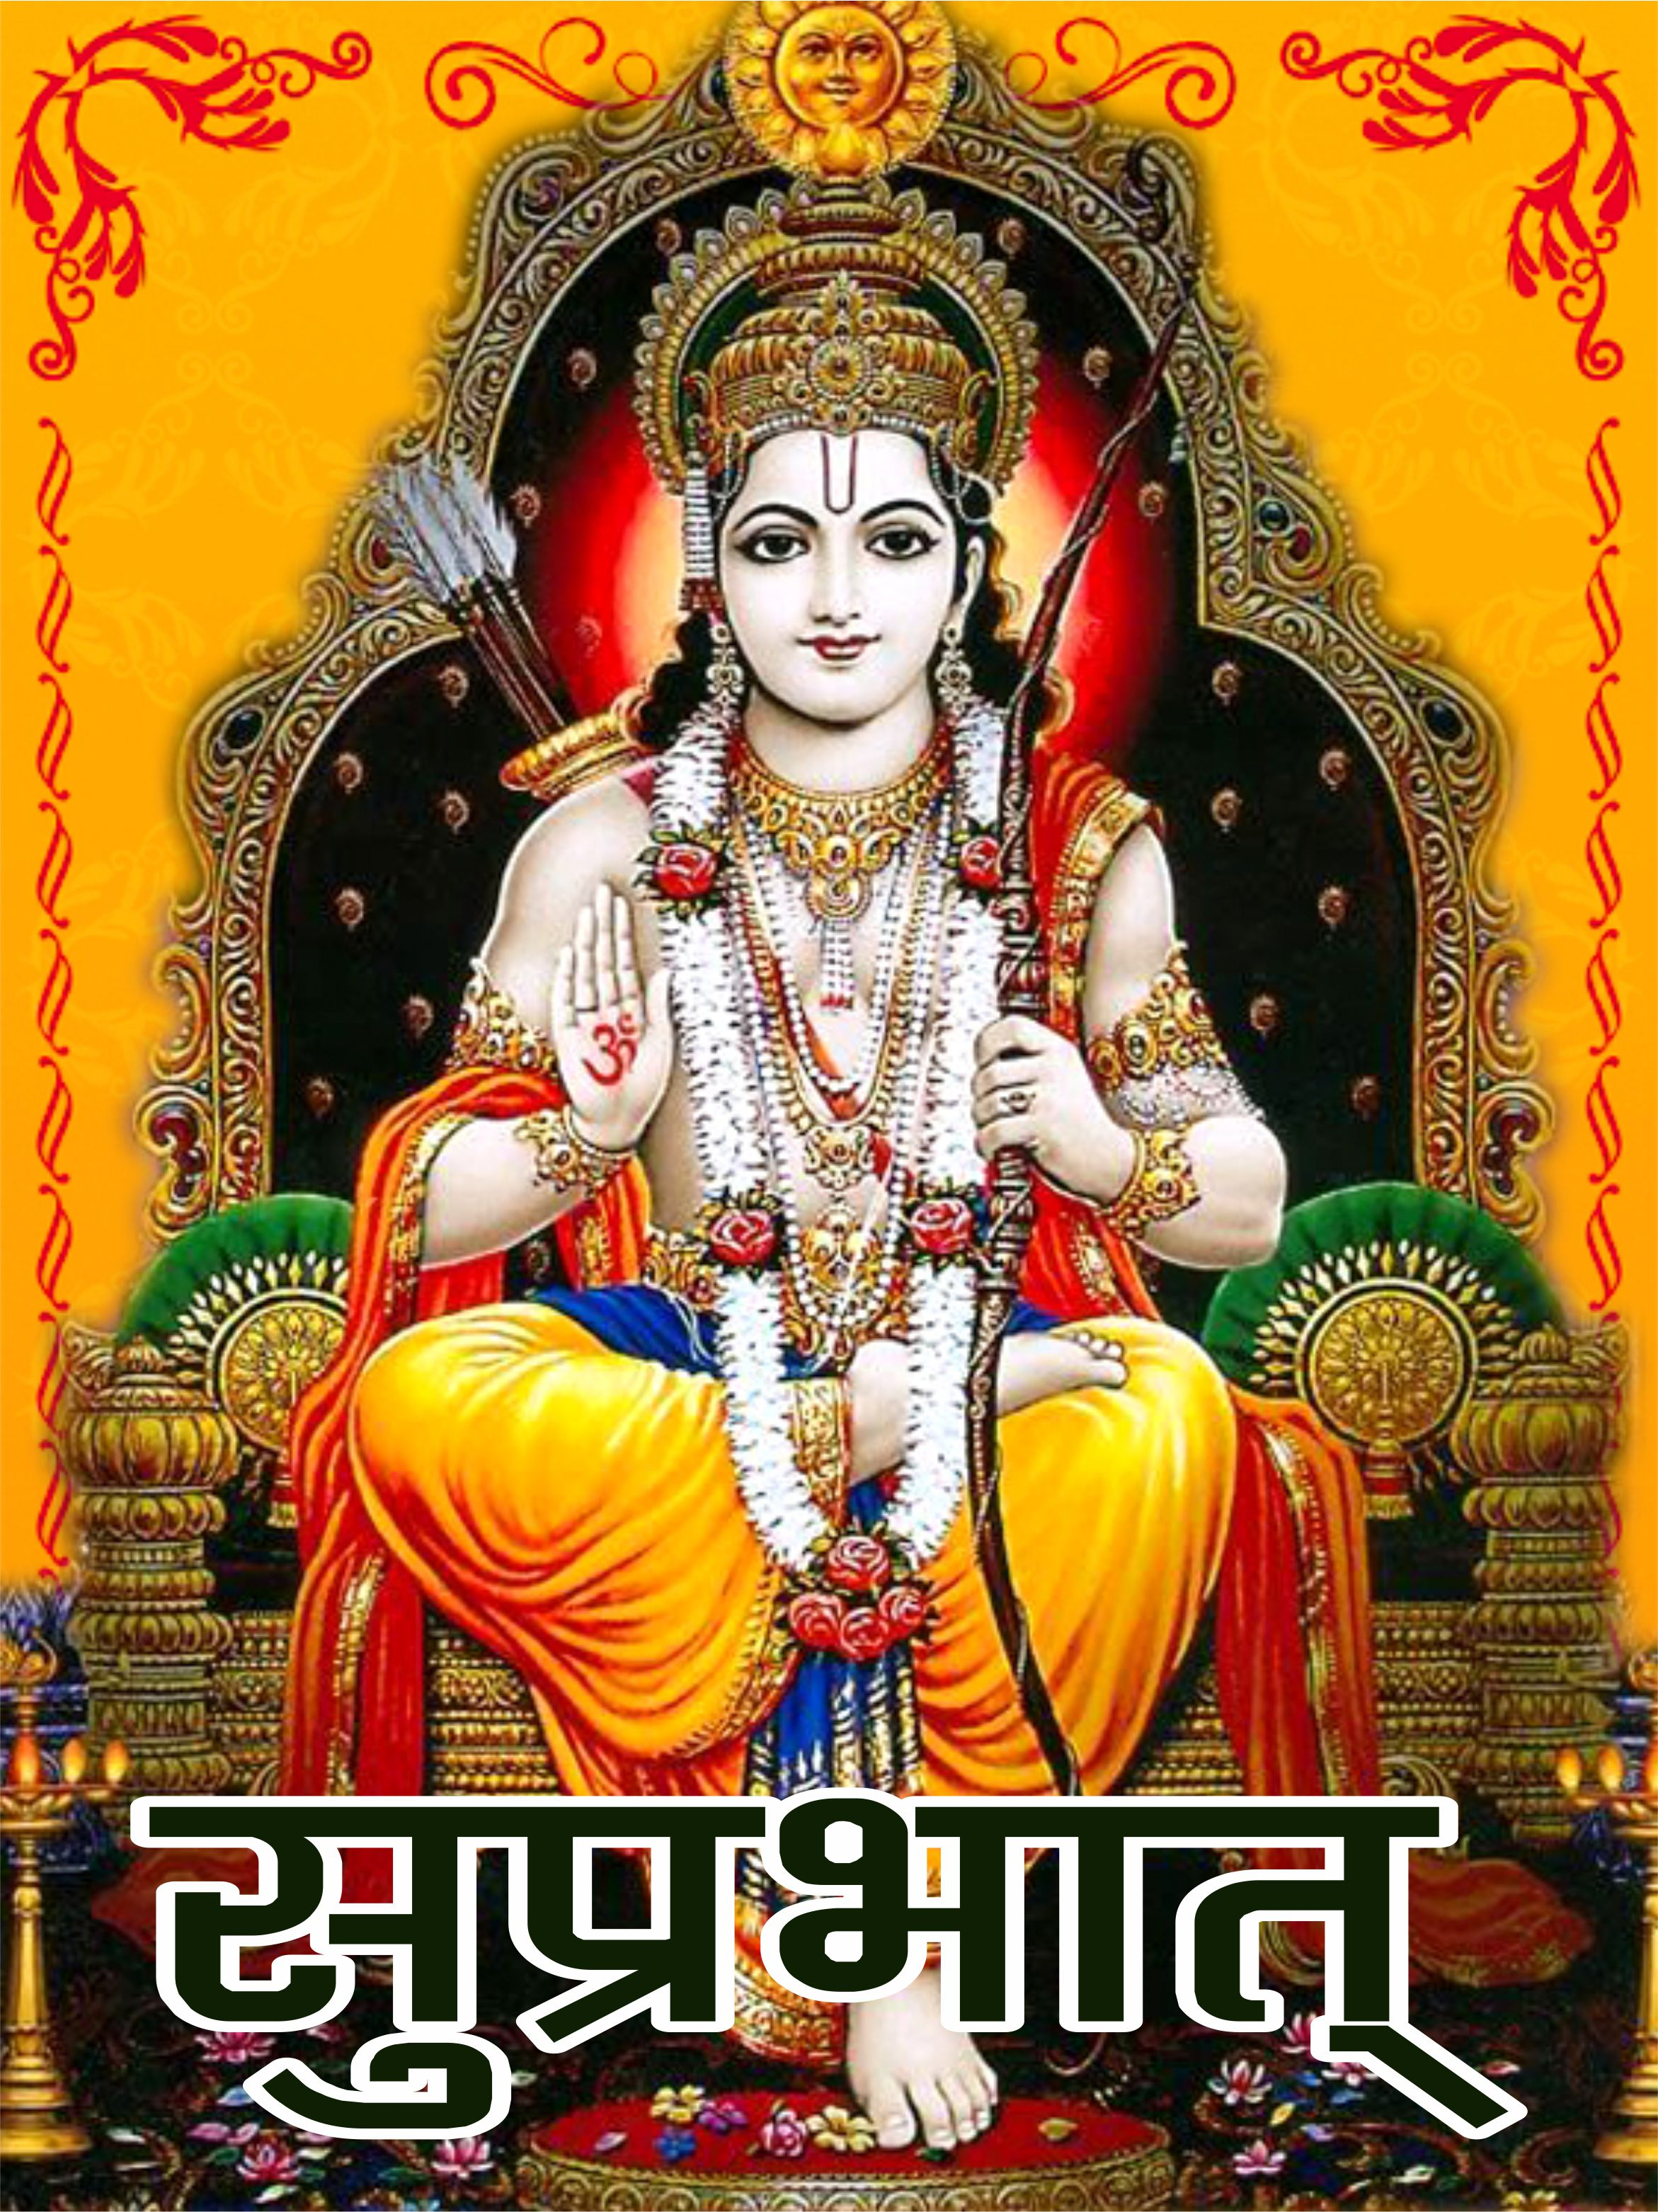 bhagwan shree ram morning wishes free download hd images